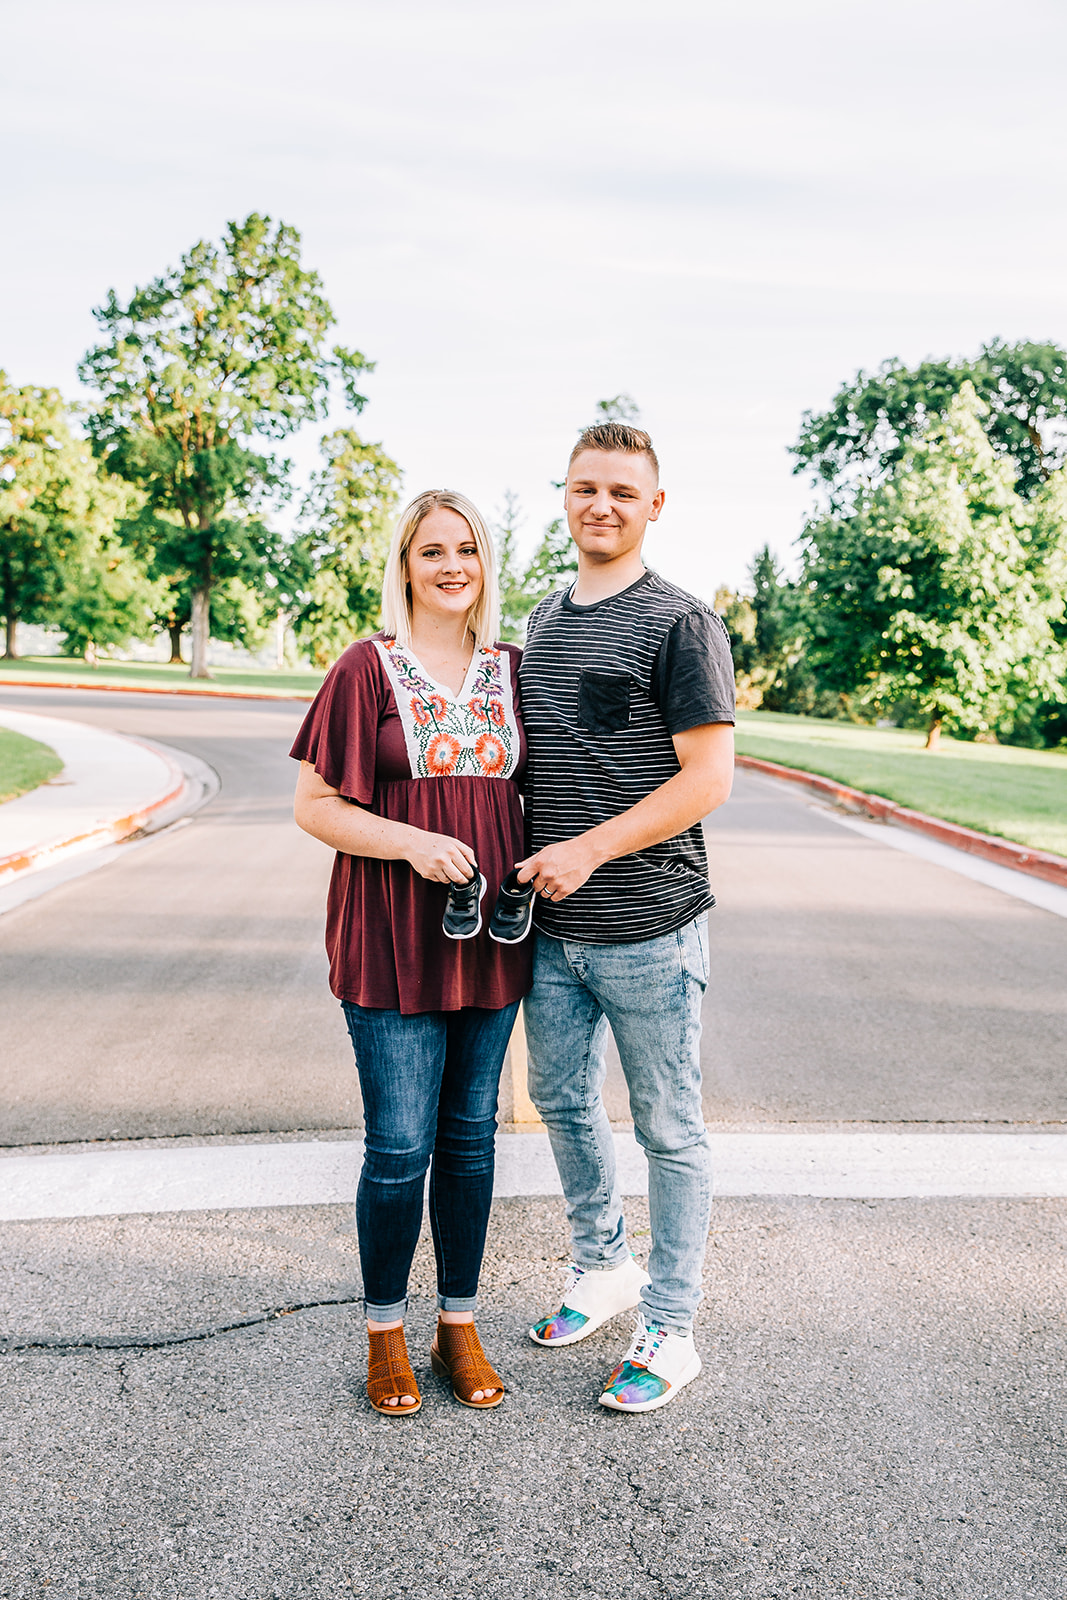 professional maternity photos by logan utah newborn photographer bella alder photography cute pregnancy announcement pictures with tiny shoes #bellaalderphoto #newborns #newbornpics #newbornphotographer #maternityphotos #pregnancyannouncement #genderreveal #birthannouncement #birthstoryphotographer